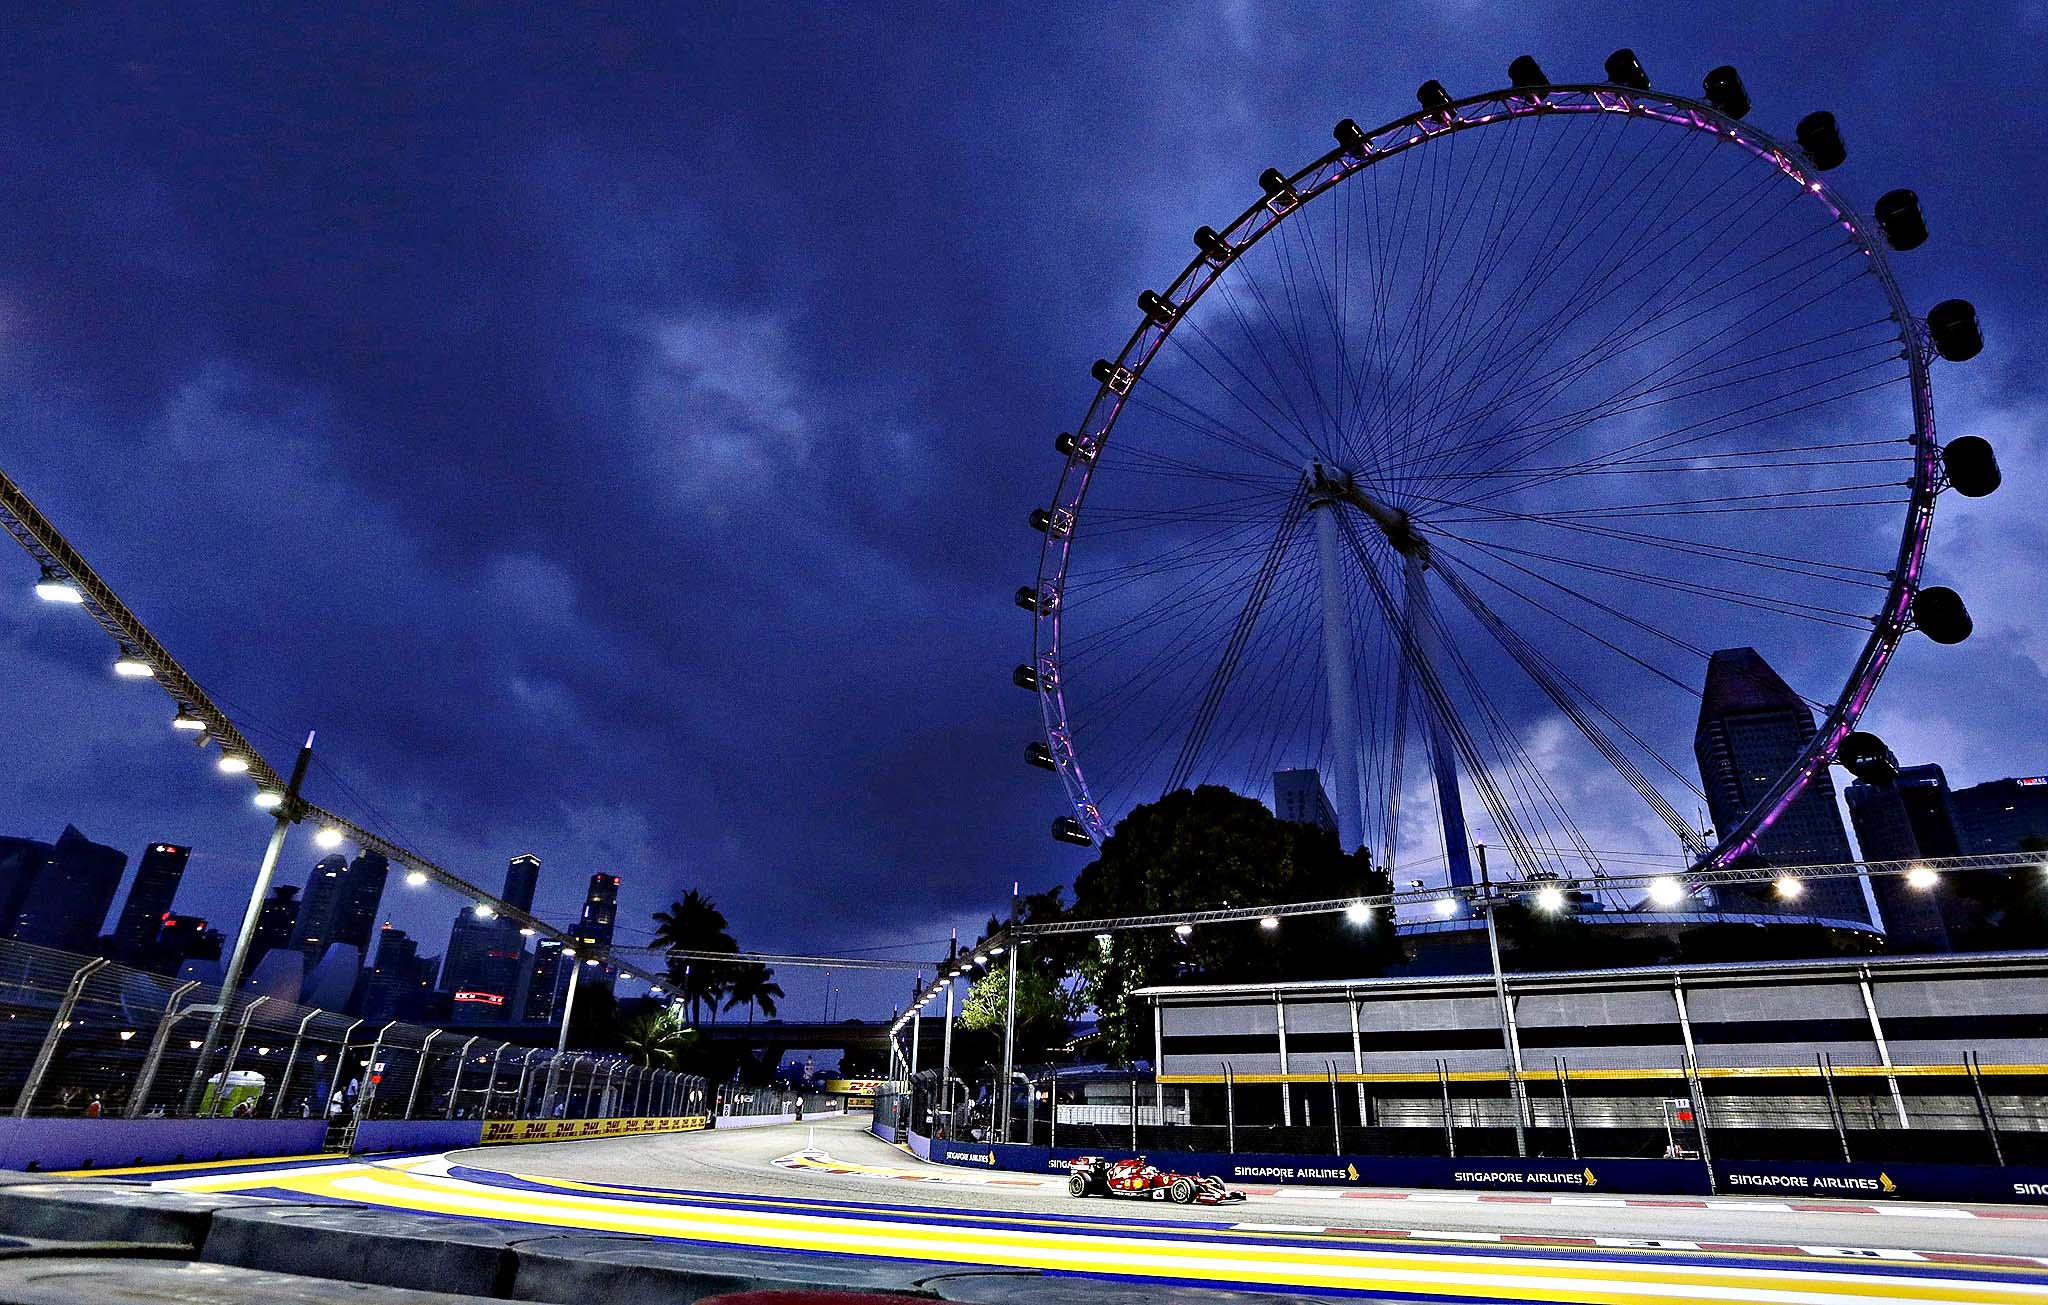 Ferrari Formula One driver Alonso of Spain drives past the Singapore Flyer observation wheel during the first practice session of the Singapore F1 Grand Prix...Ferrari Formula One driver Fernando Alonso of Spain drives past the Singapore Flyer observation wheel during the first practice session of the Singapore F1 Grand Prix on the Marina Bay street circuit in Singapore September 19, 2014.